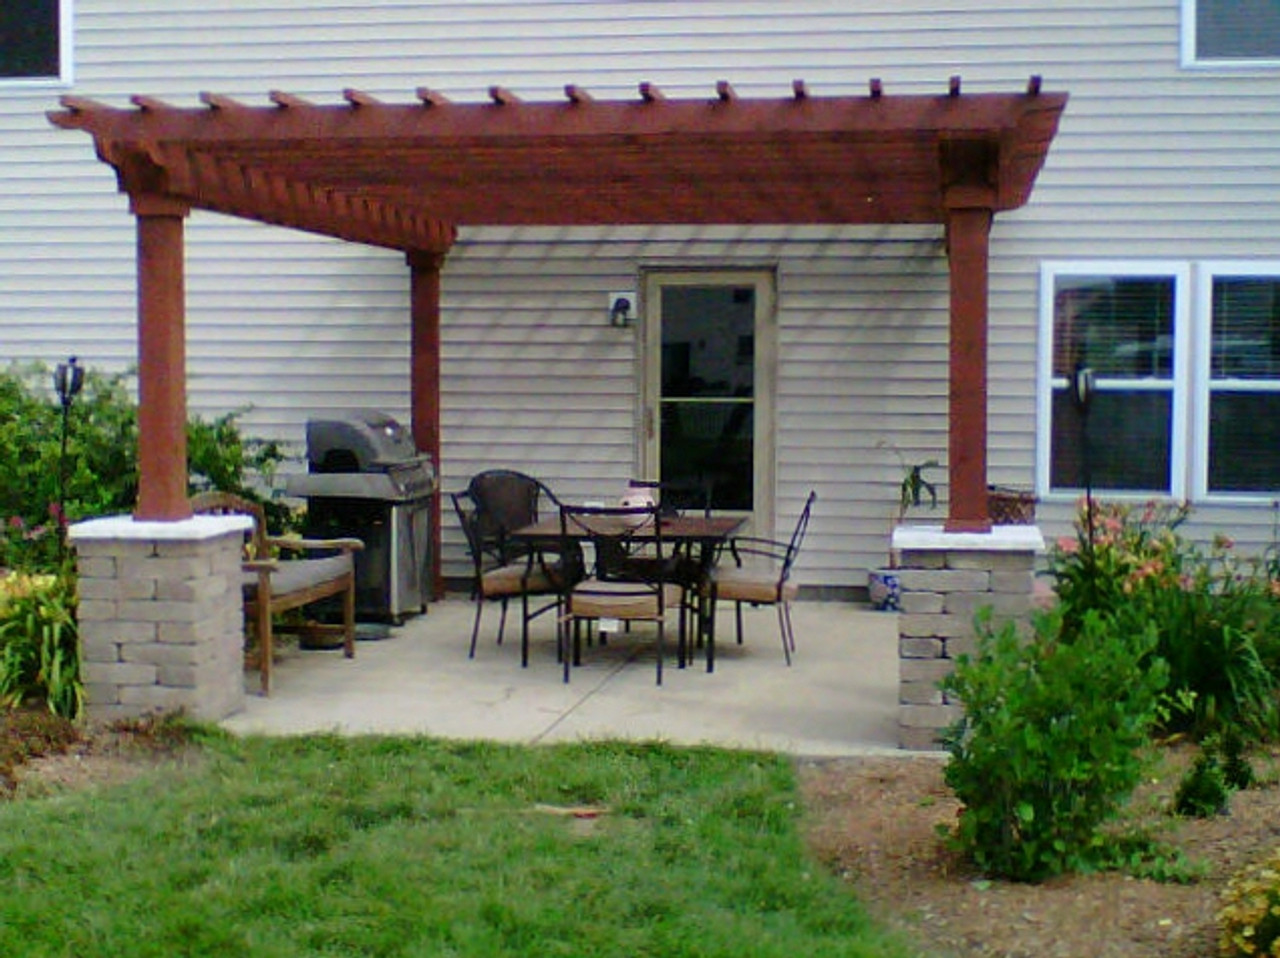 Eastern Pine pergola kit in backyard - 10 X 12 DIY Pergola Kit.